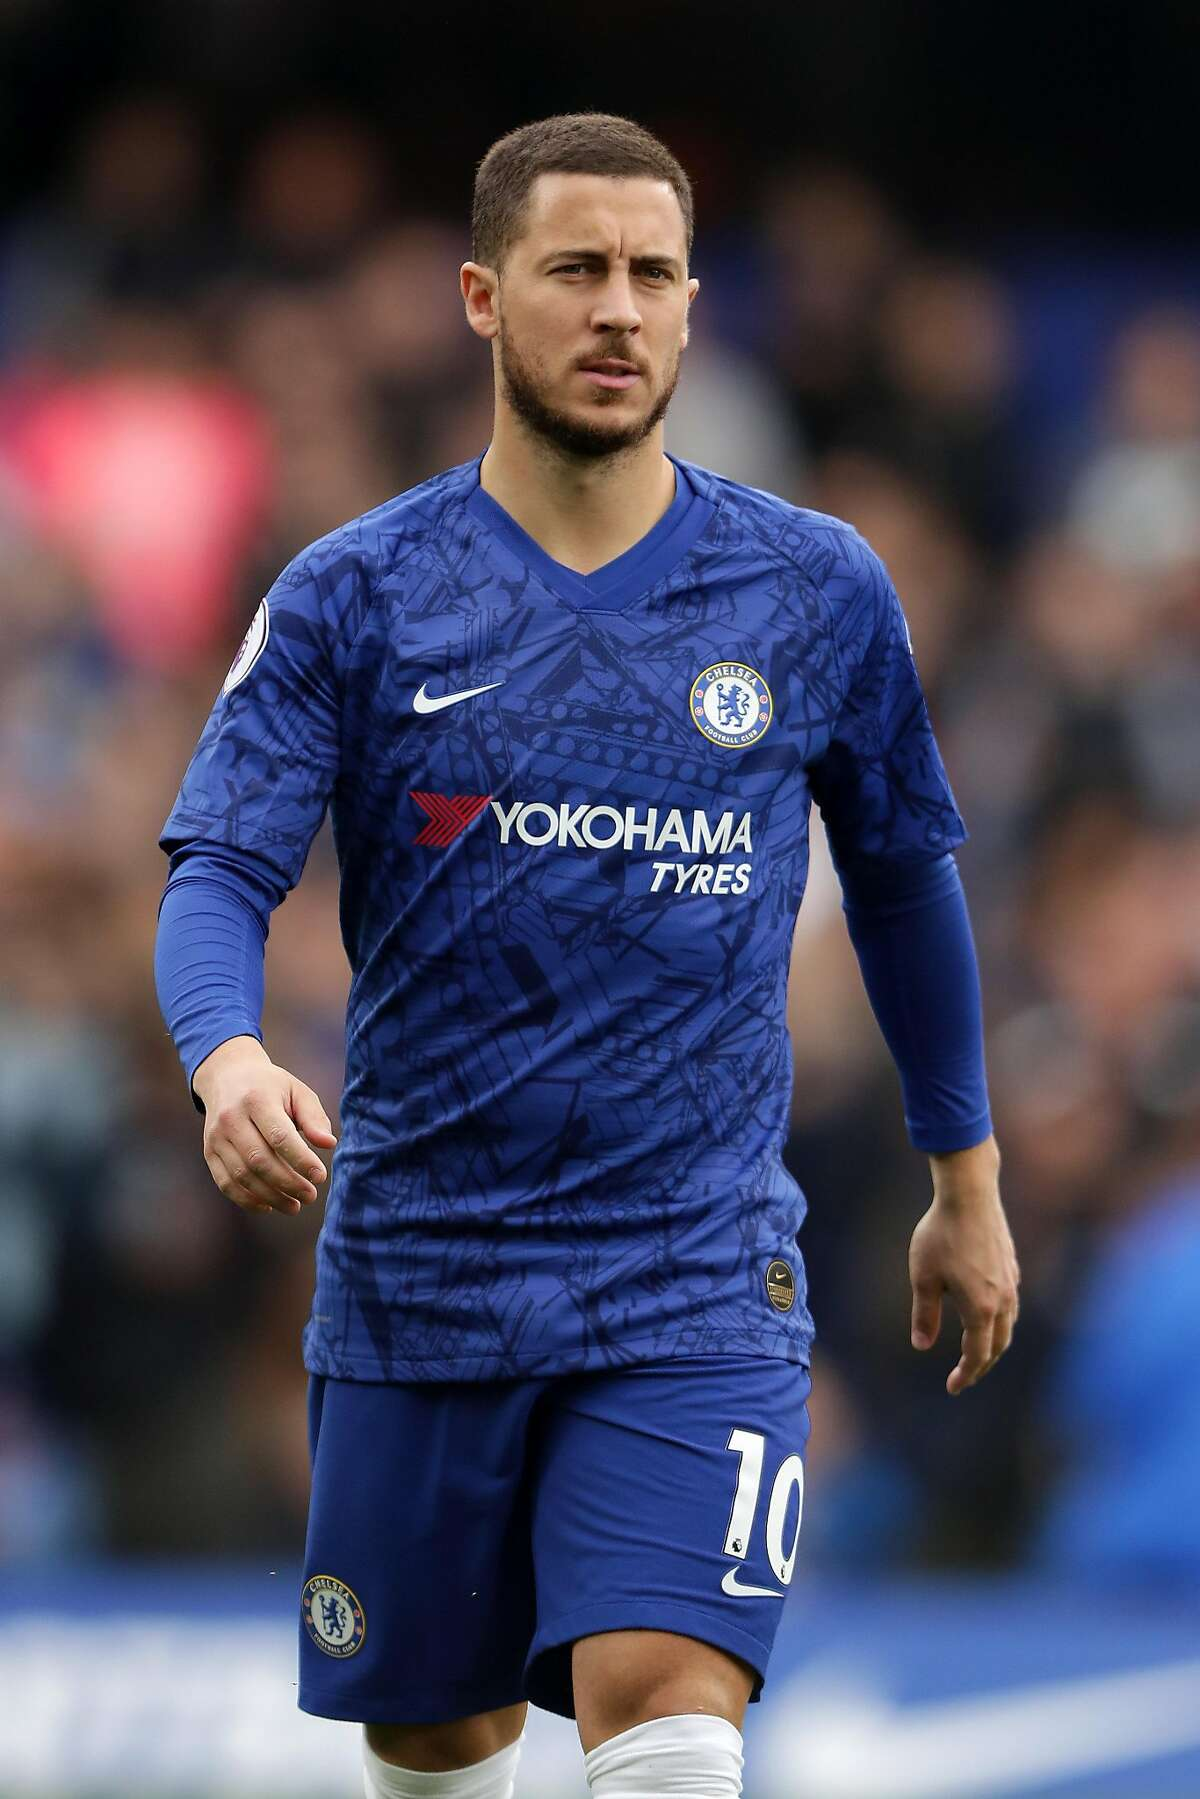 LONDON, ENGLAND - MAY 05: Eden Hazard of Chelsea looks on prior to the Premier League match between Chelsea FC and Watford FC at Stamford Bridge on May 05, 2019 in London, United Kingdom. (Photo by Richard Heathcote/Getty Images)